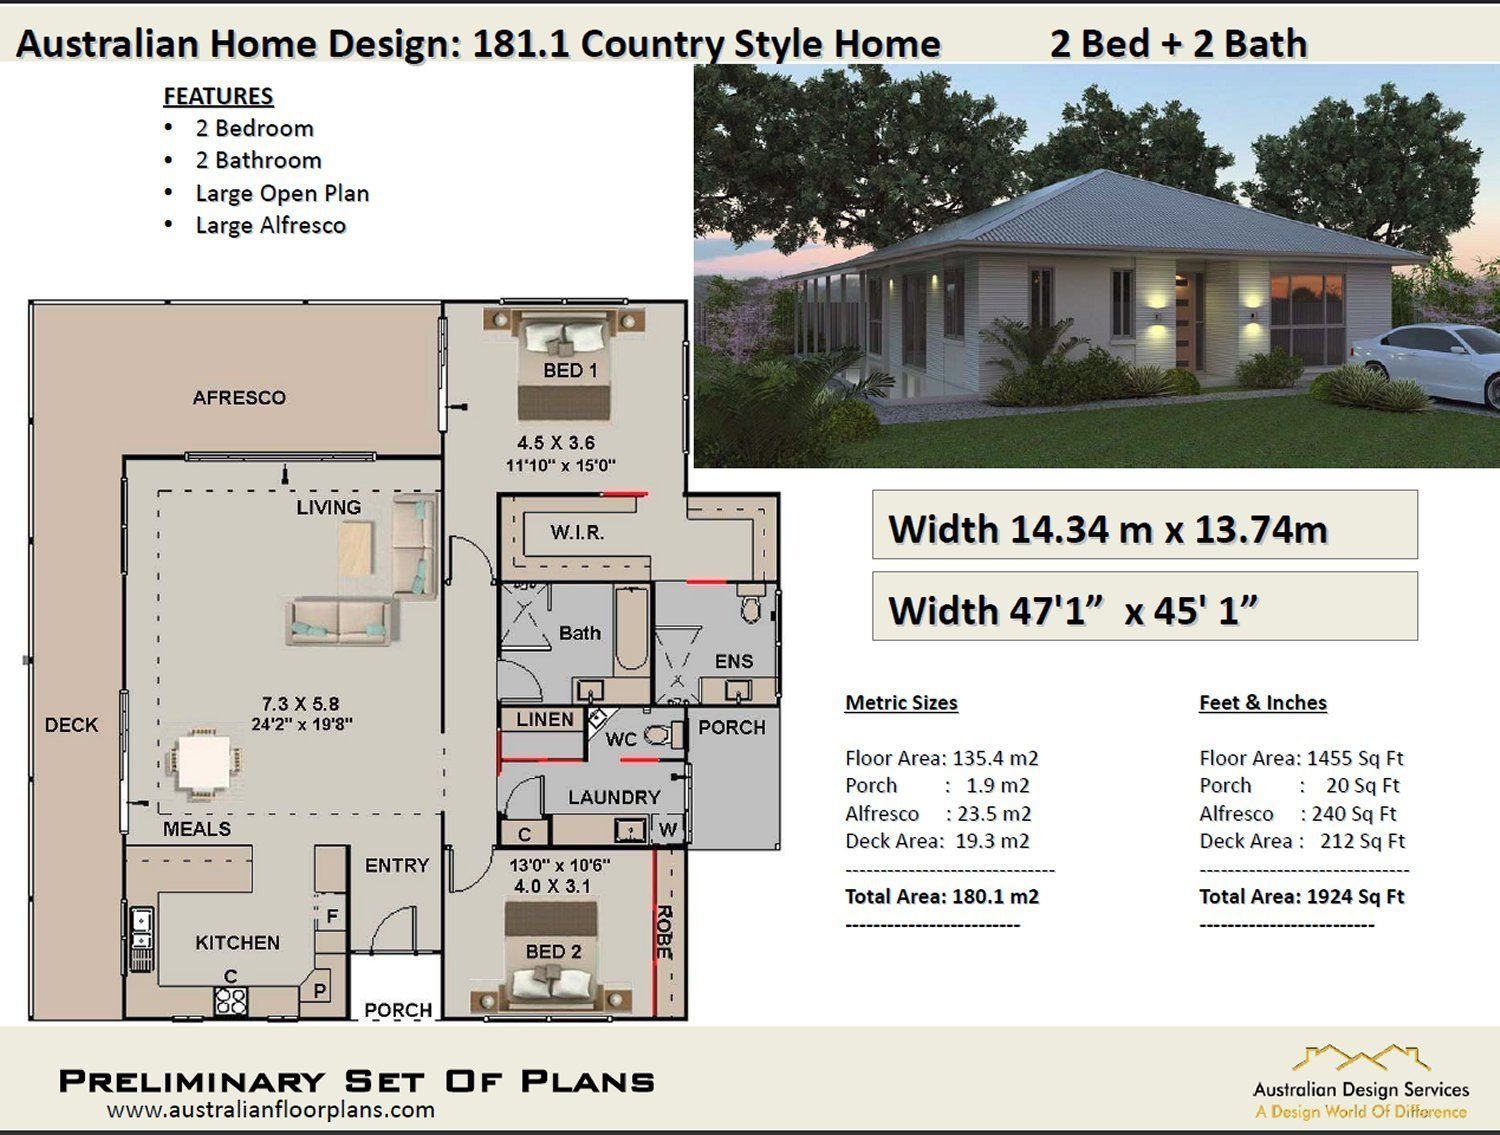 Country Homestead 2 Bedroom House Plans 180m2 1924 Sq Ft Etsy In 2020 House Plans Australia 2 Bedroom House Plans Country House Plans